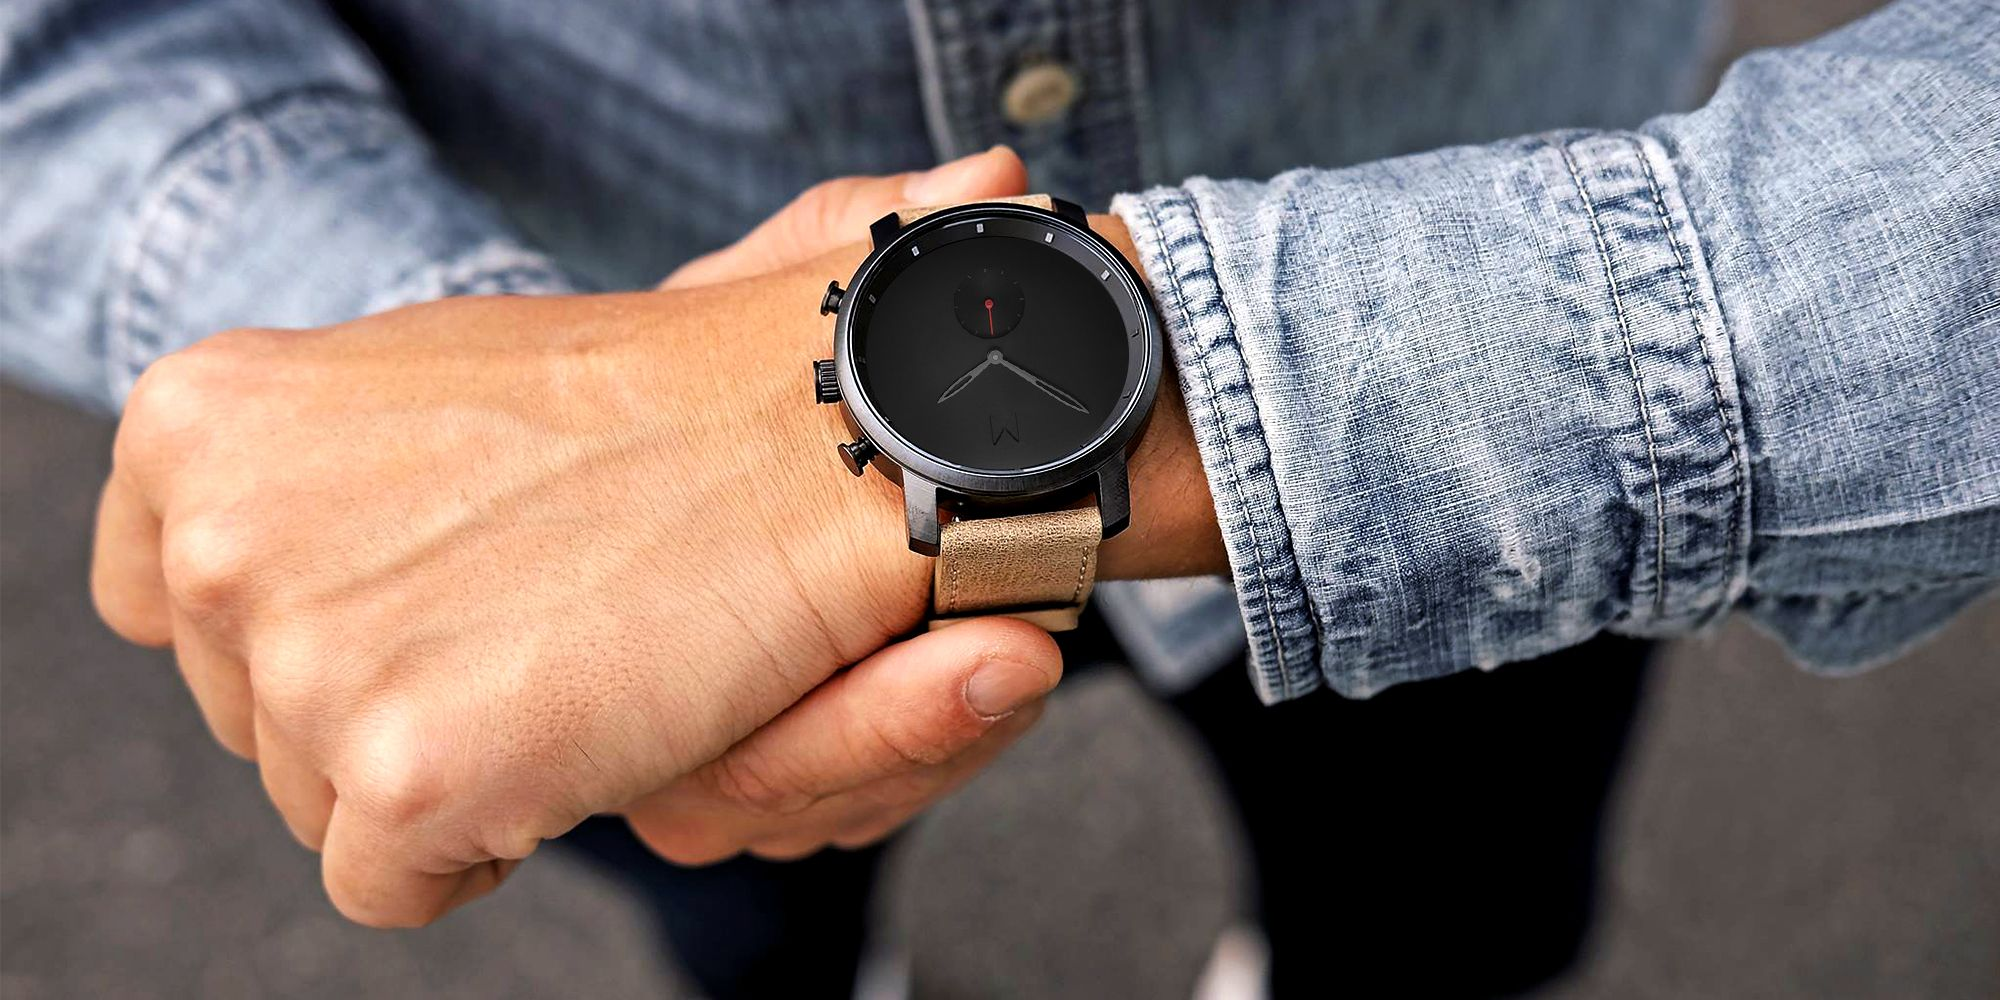 12 Stylish Watches Under $300 That Don't Look Cheap